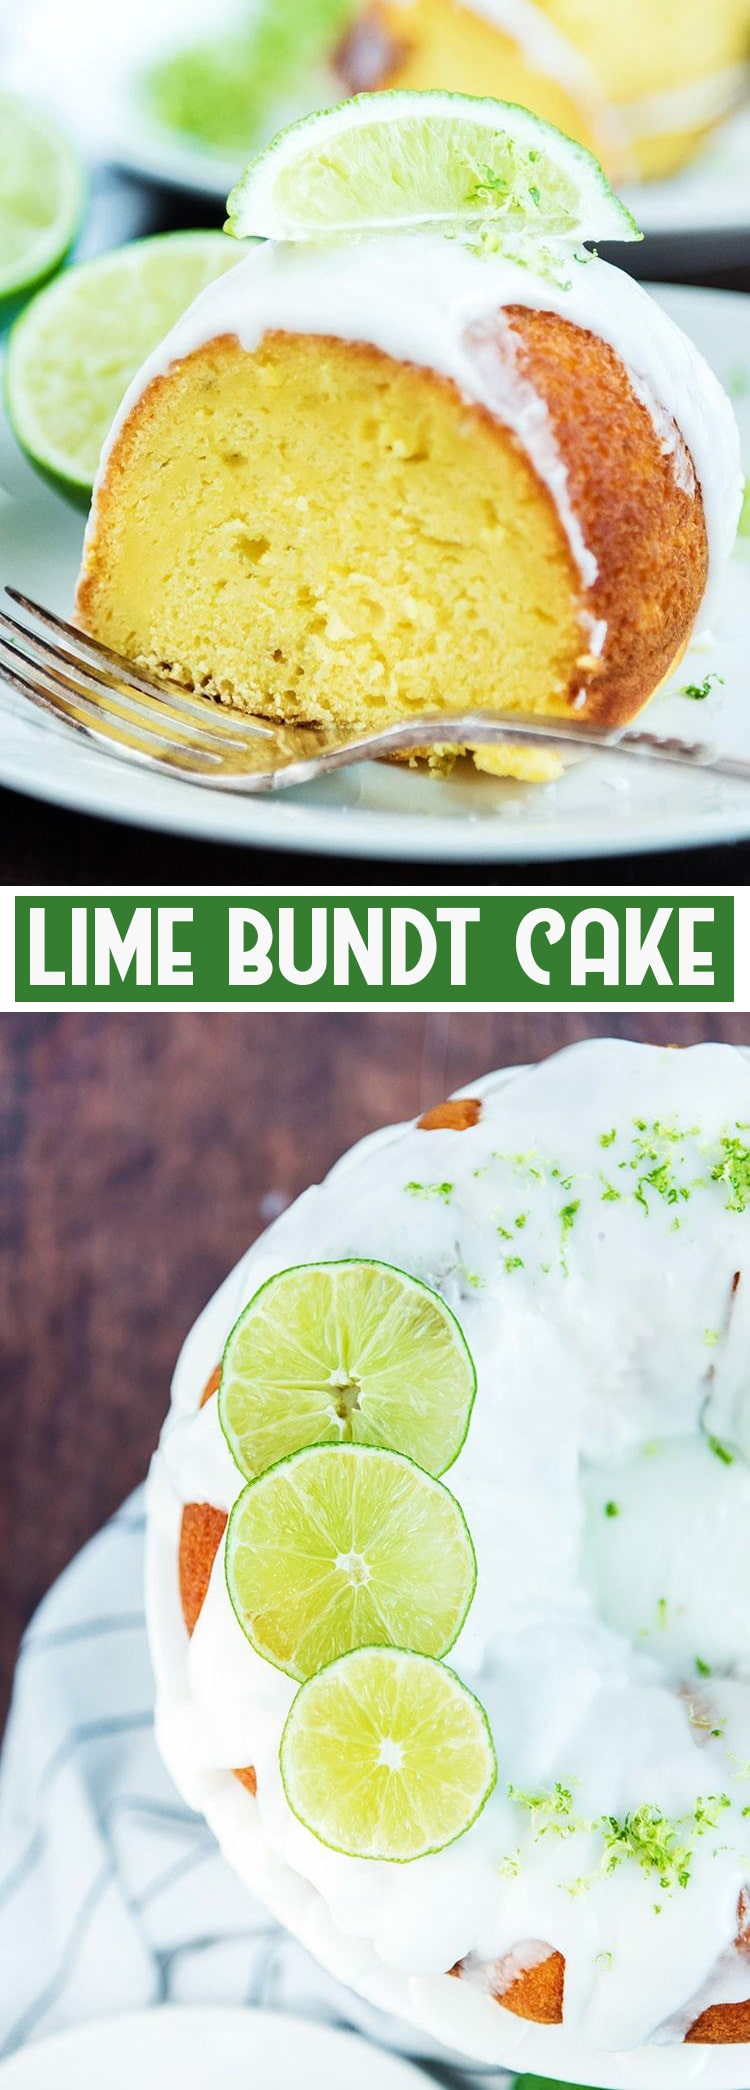 This delicious lime bundt cake starts with a boxed cake mix, with a few simple additions, making it a light and refreshing cake with the perfect hint of lime in every bite.